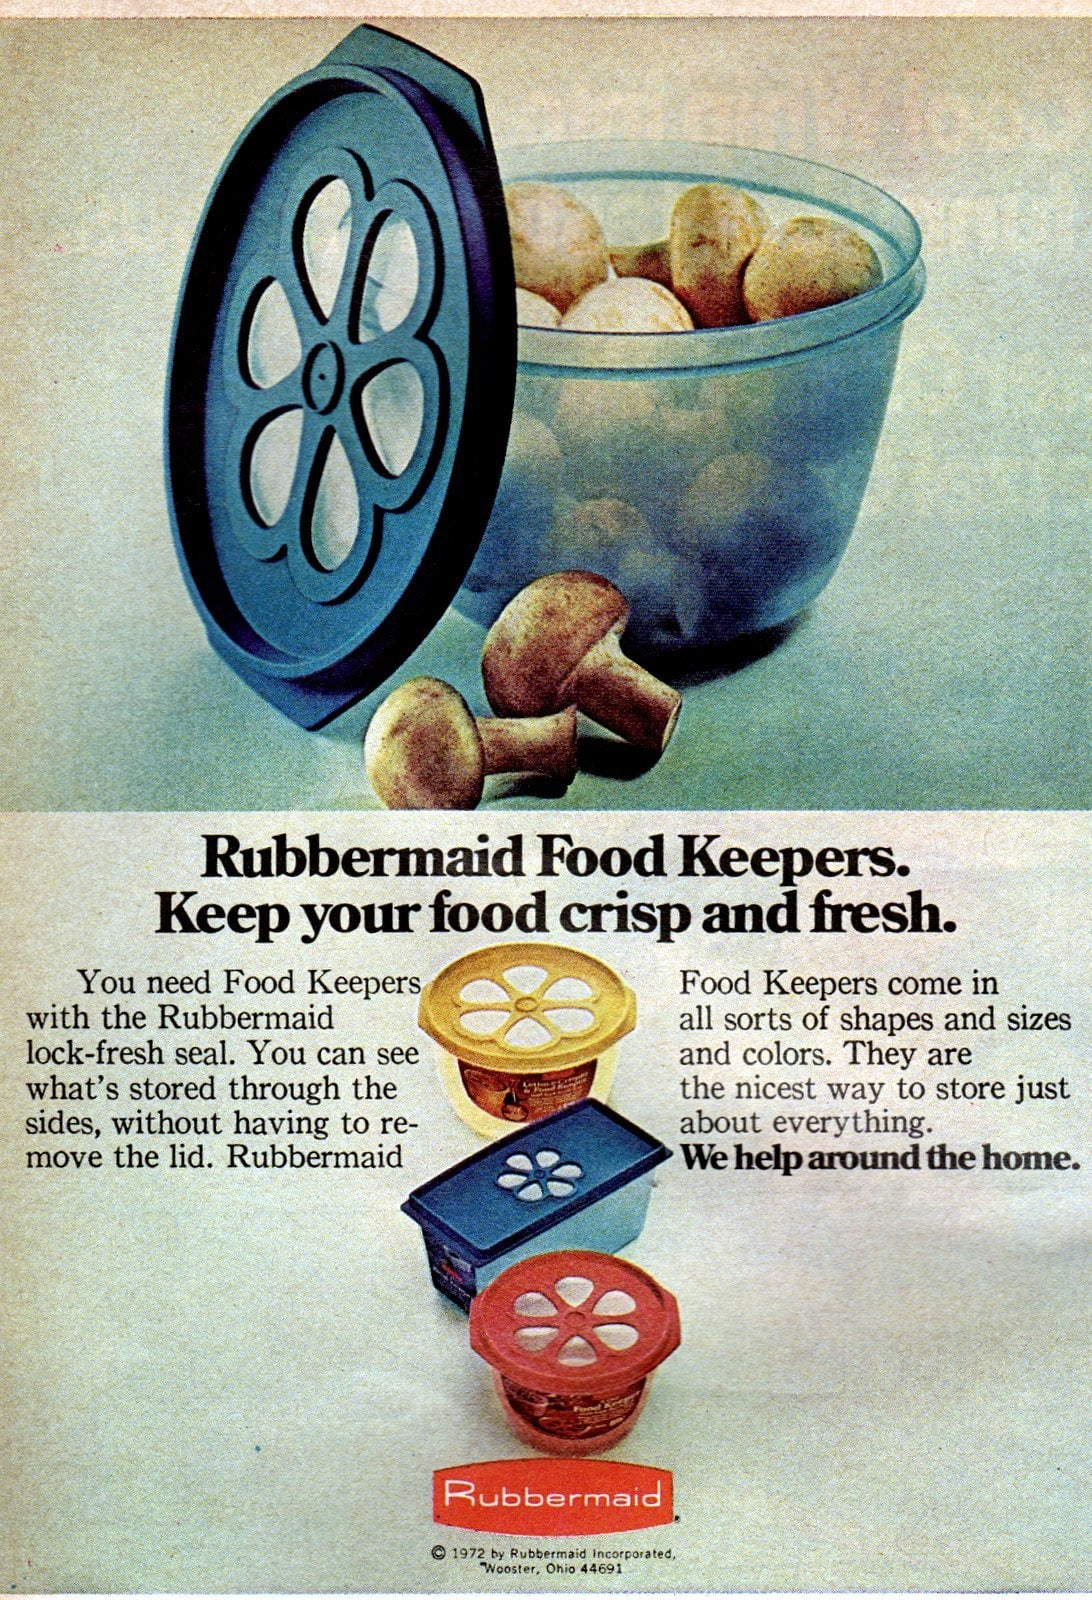 Rubbermaid Food Keepers with flower tops (1972)